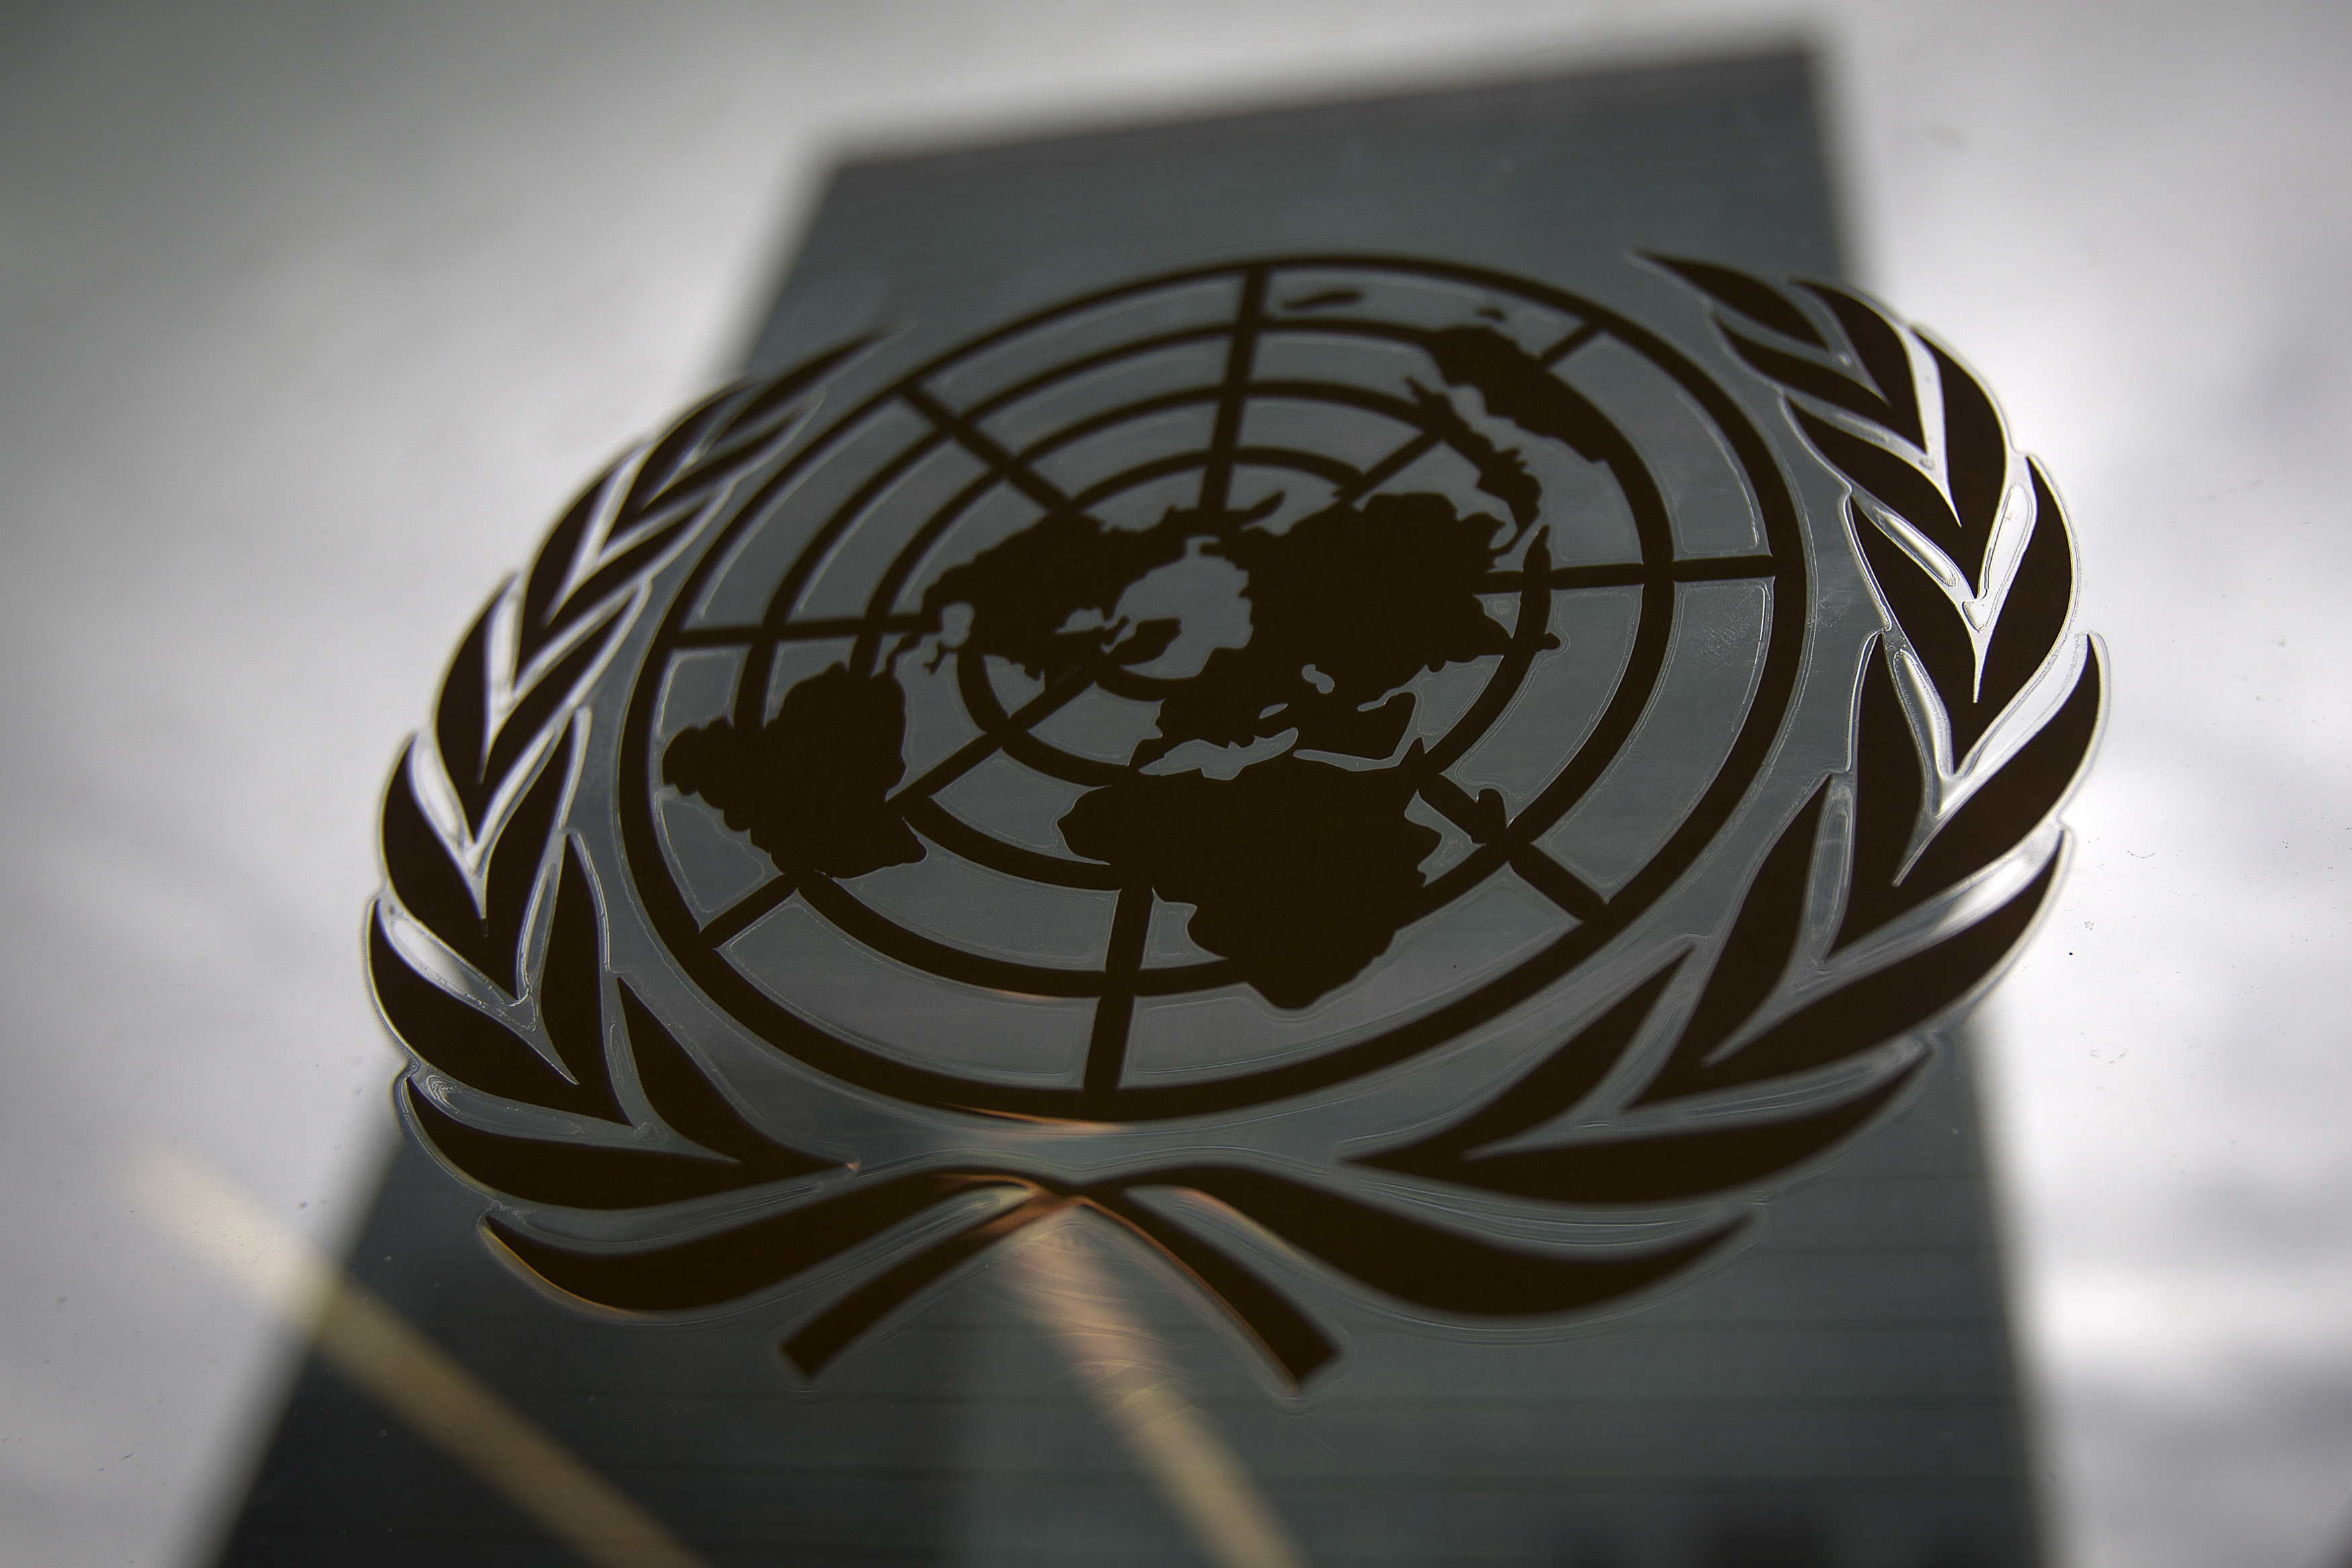 The United Nations headquarters building is pictured though a window with the UN logo in the foreground in the Manhattan borough of New York August 15, 2014.    REUTERS/Carlo Allegri (UNITED STATES - Tags: SOCIETY POLITICS BUSINESS LOGO) - GM1EA8G0HQF01